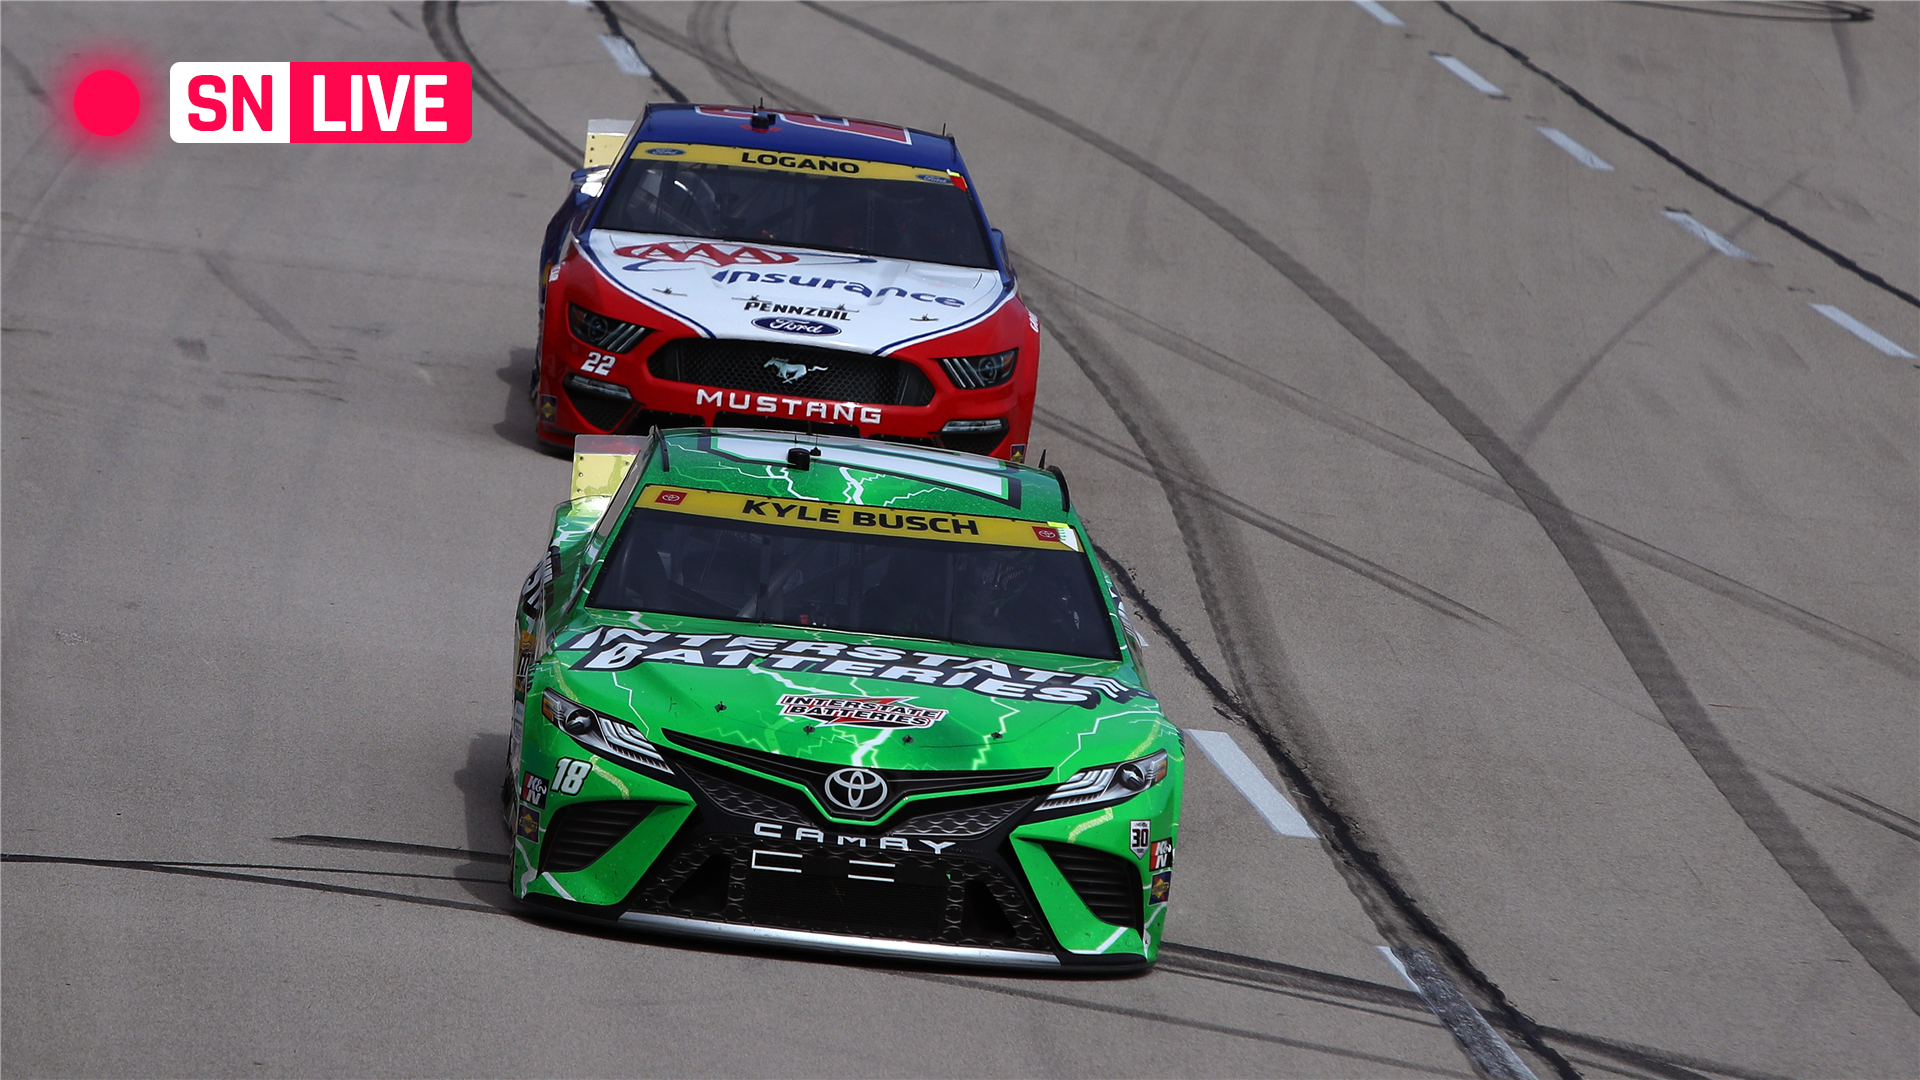 NASCAR at Kansas results from Hollywood Casino 400: Kyle Larson wins third straight race and ninth of the year, locked into Championship 4